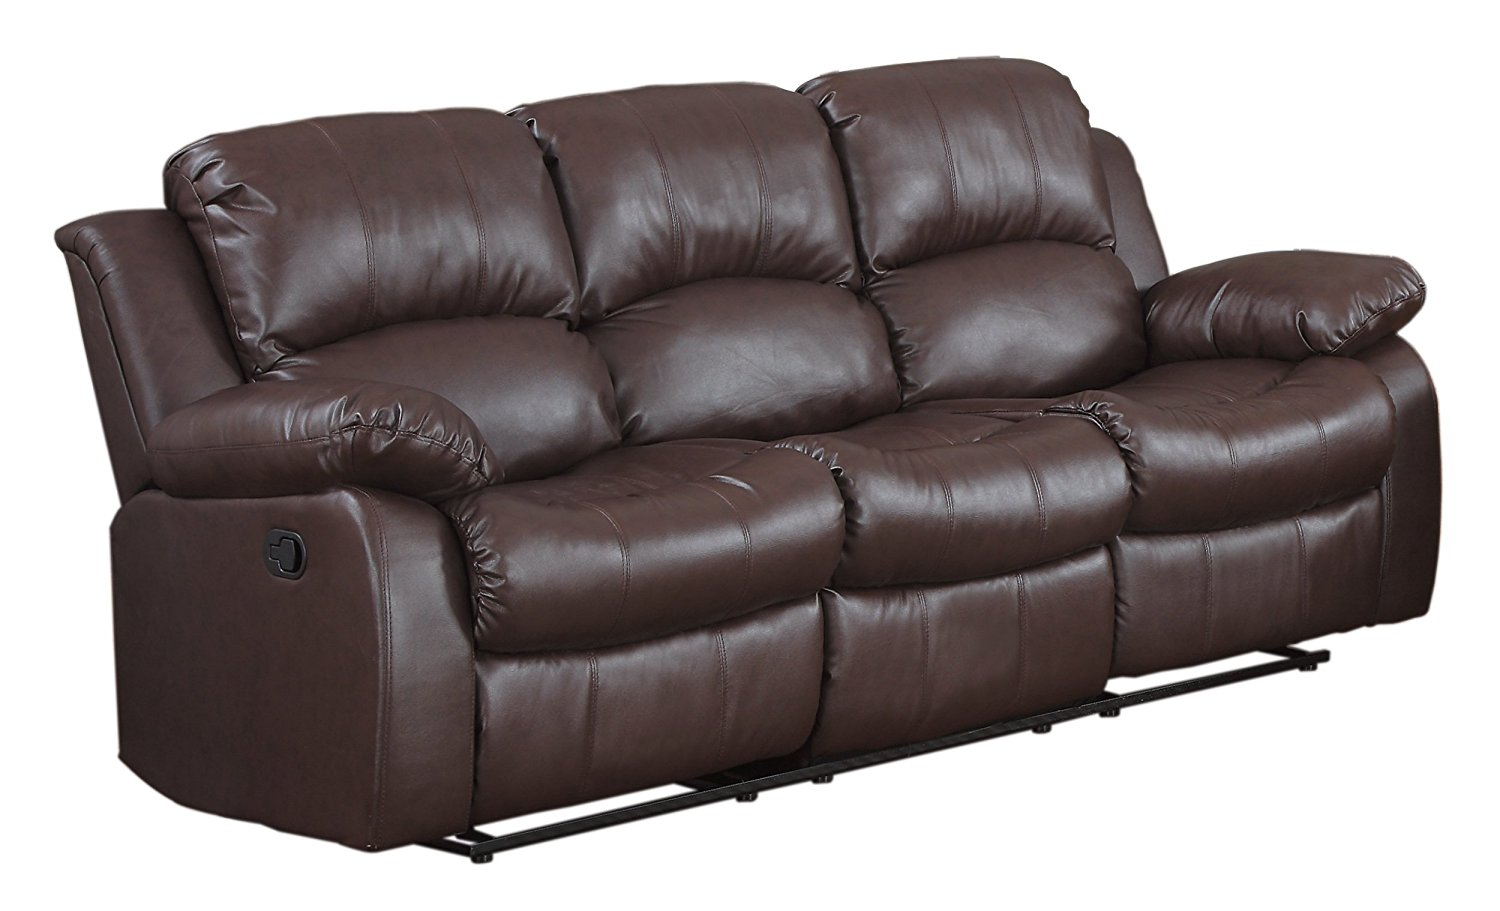 Homelegance Double Reclining Sofa, Brown Bonded Leather